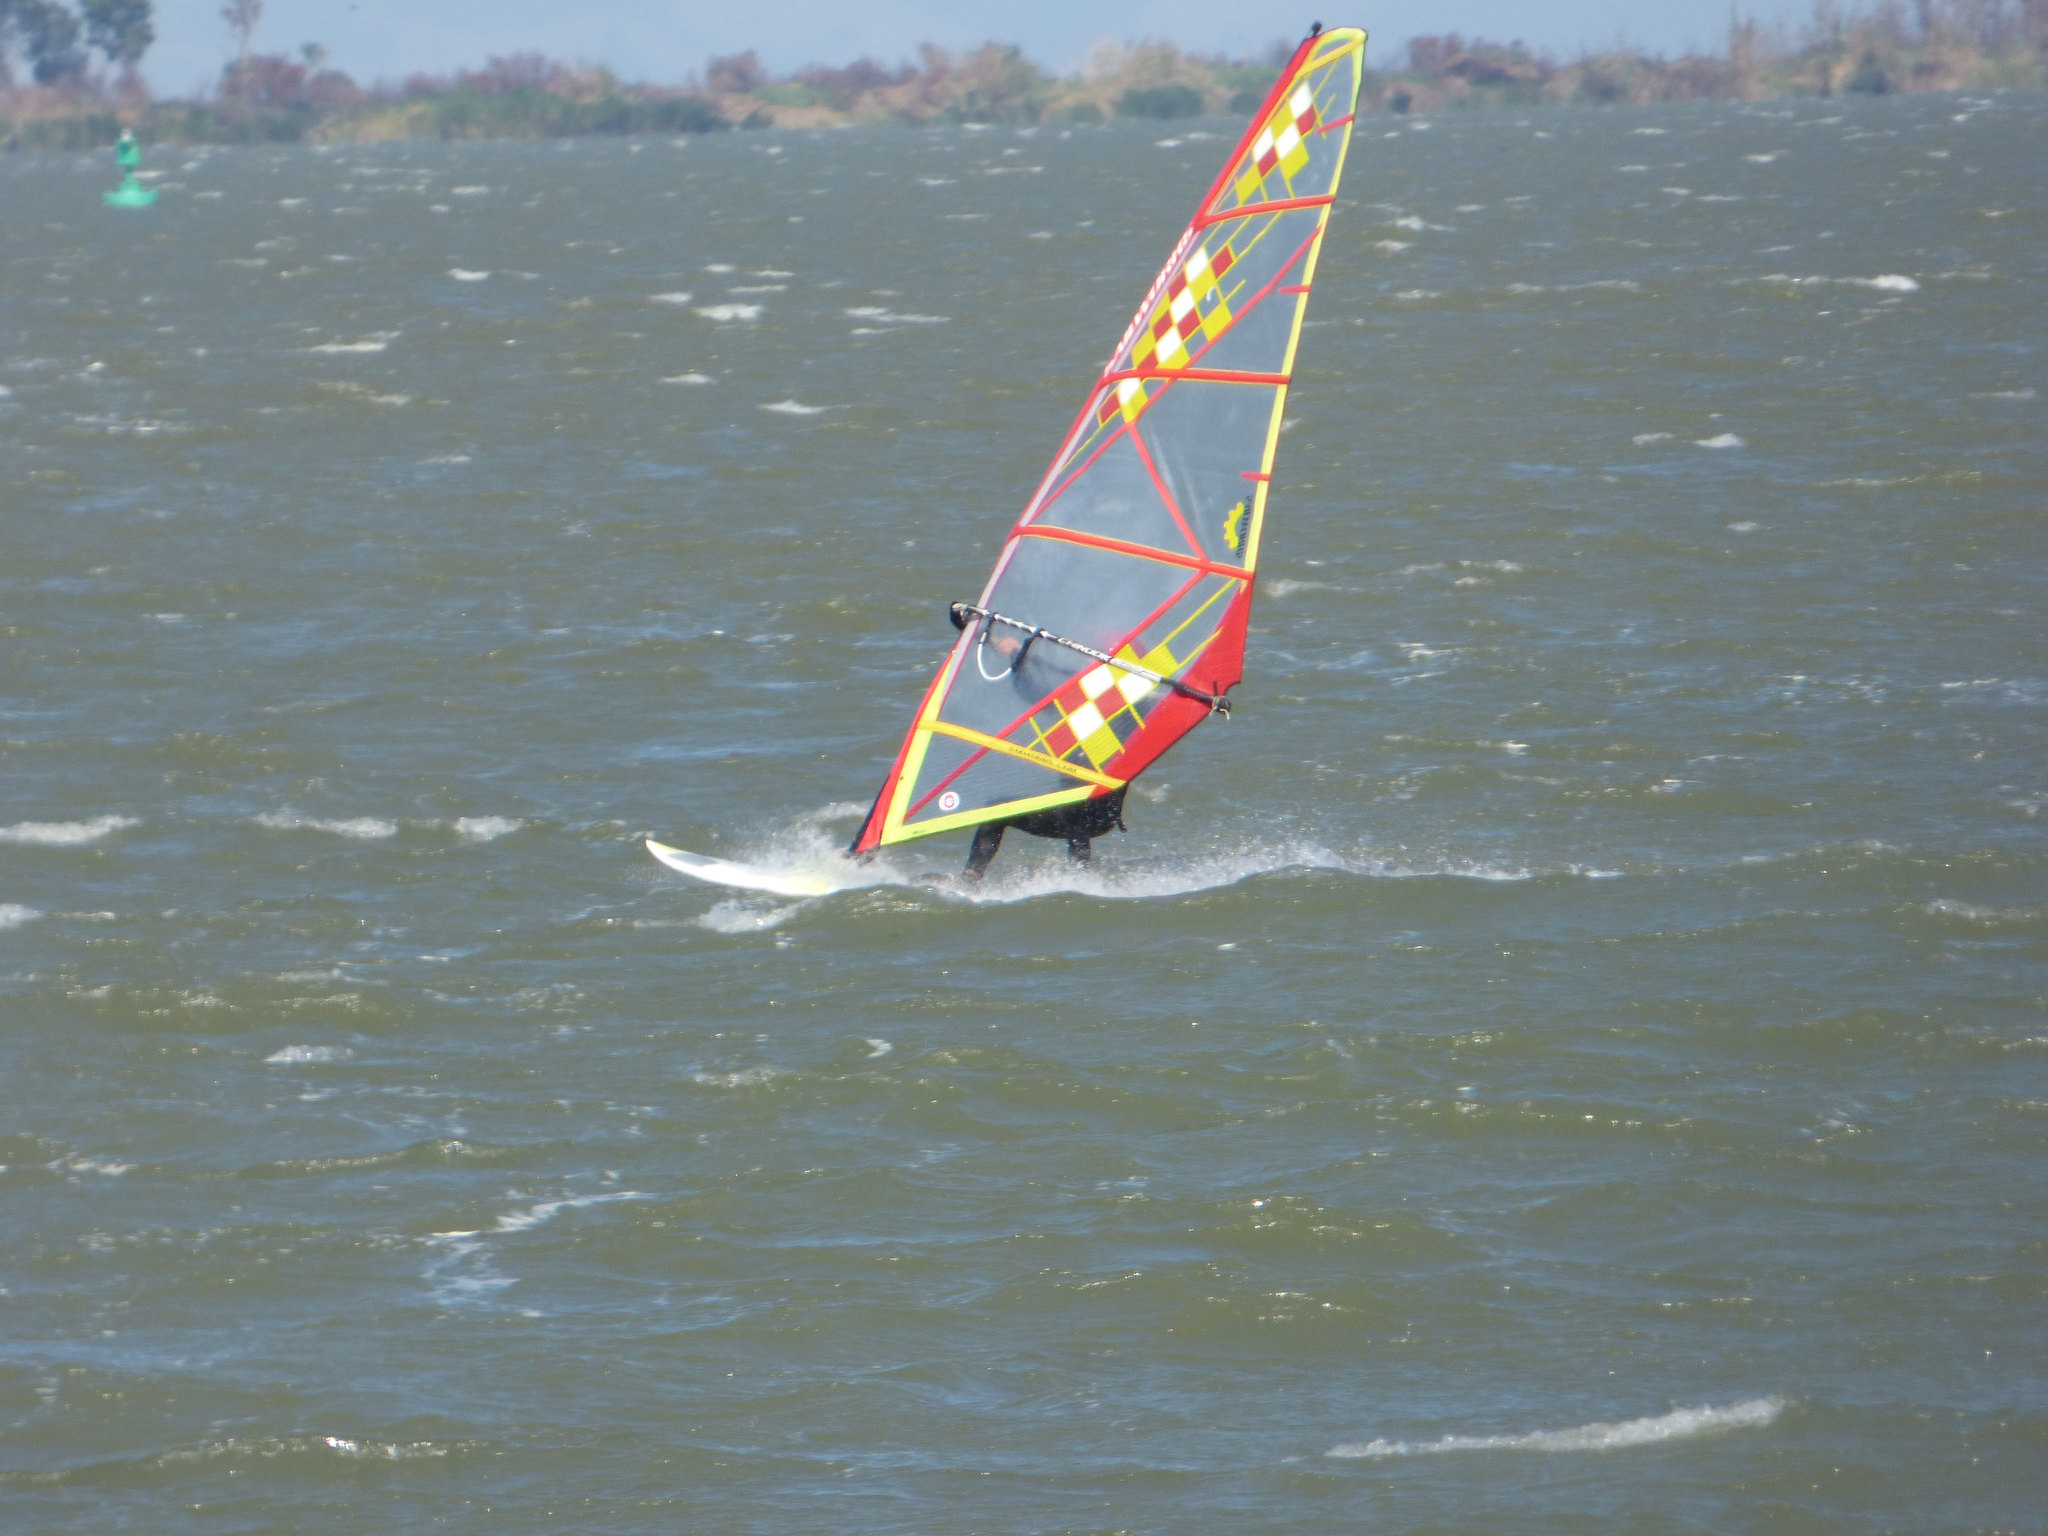 2018-06-18 - Along Delta Windsurfing Country